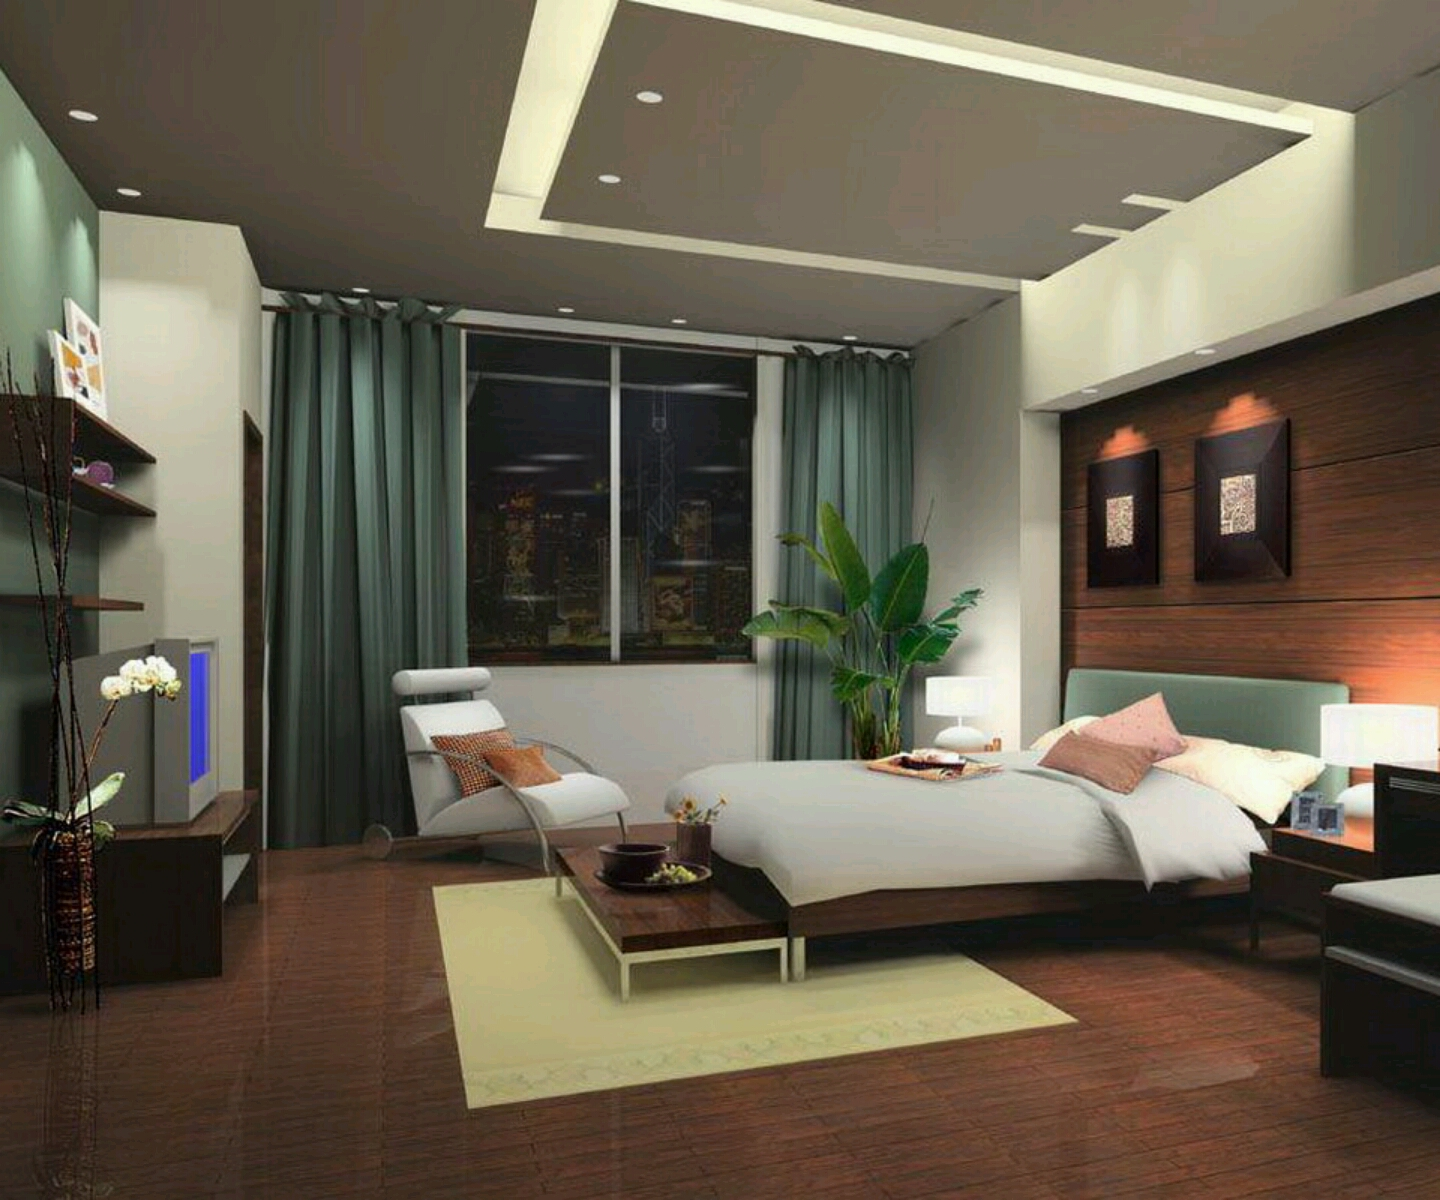 New home designs latest modern bedrooms designs best ideas for House room design ideas